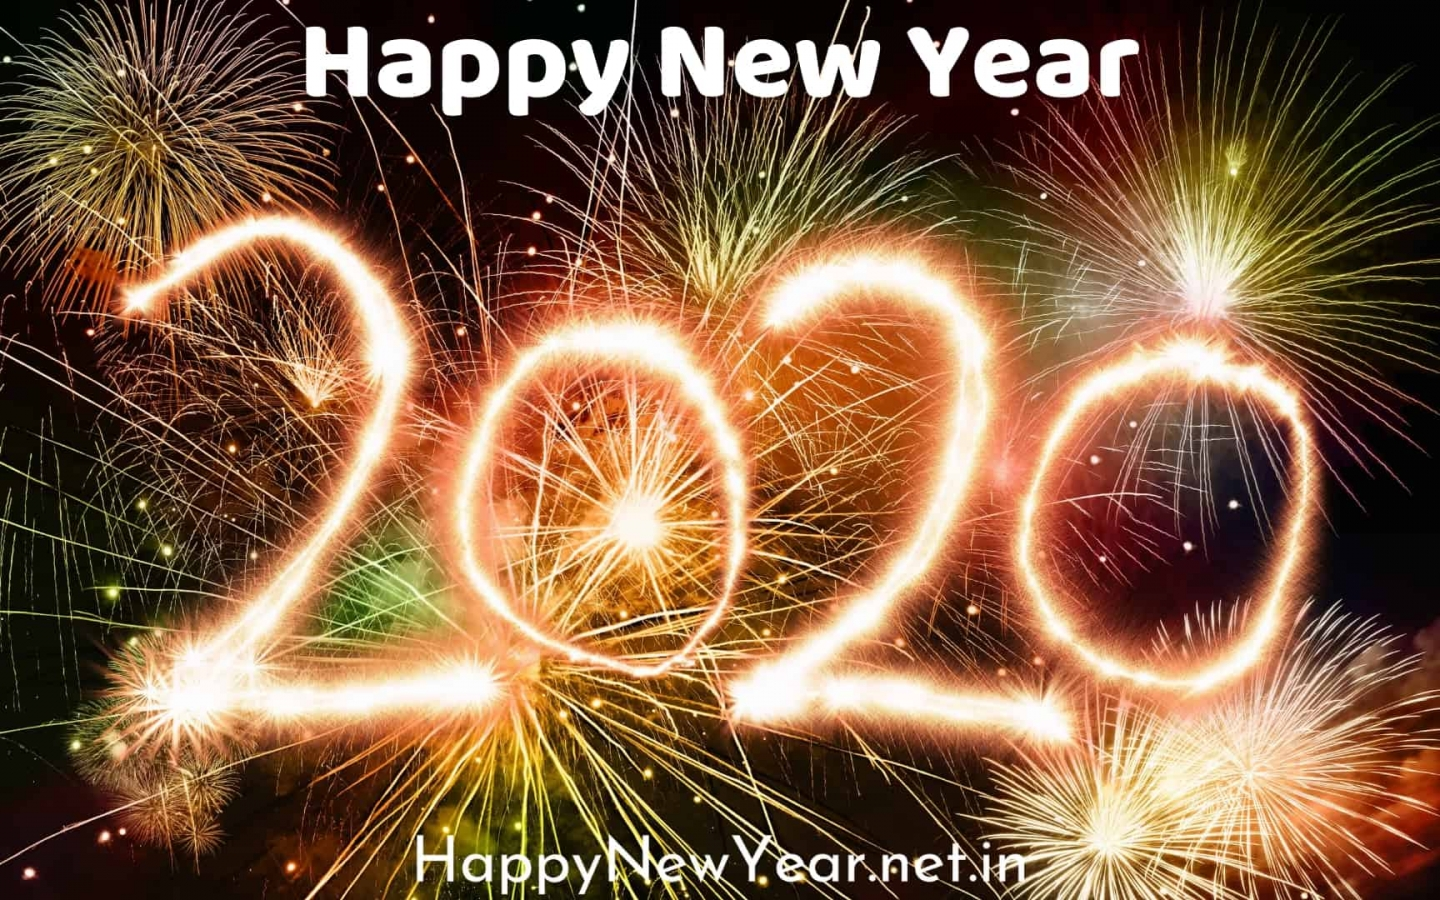 download Happy new year wishes for friends 2020 wallpaper 1440x900